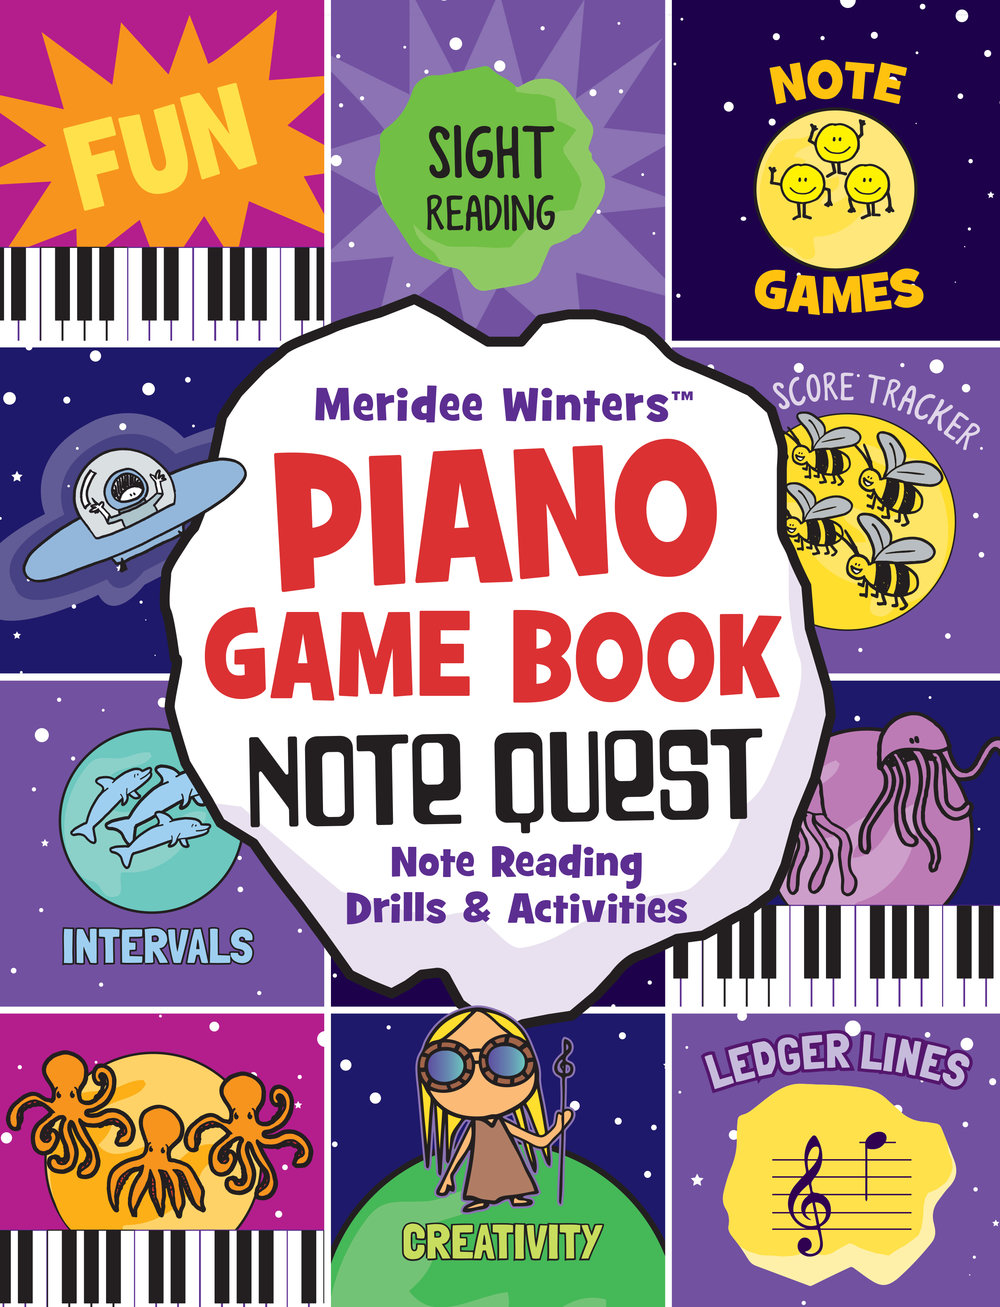 Note Quest Piano Game Book - Note Quest has been used and tested by over 10,000 students. Meridee Winters Note Quest (Piano Game Book): Note Reading Drills and Activities is an innovative music education tool that features pages of vibrant, effective and FUN note reading games. These activities are great way to strengthen note reading and sight reading skills, since students are drilling and internalizing notes while focusing on specific hand positions, intervals, ledger lines and more. This book can be used by independent learners or by teachers as a fun and powerful lesson tool. Each playful, space-themed game can be used in a variety of ways, from timing yourself on the page and trying the beat a previous record to searching the page for each occurrence of a specific note. See the table of contents for more great ways to play, or invent your own. Note Quest also includes templates for creating your own games, which you can custom tailor to you or your students' needs.